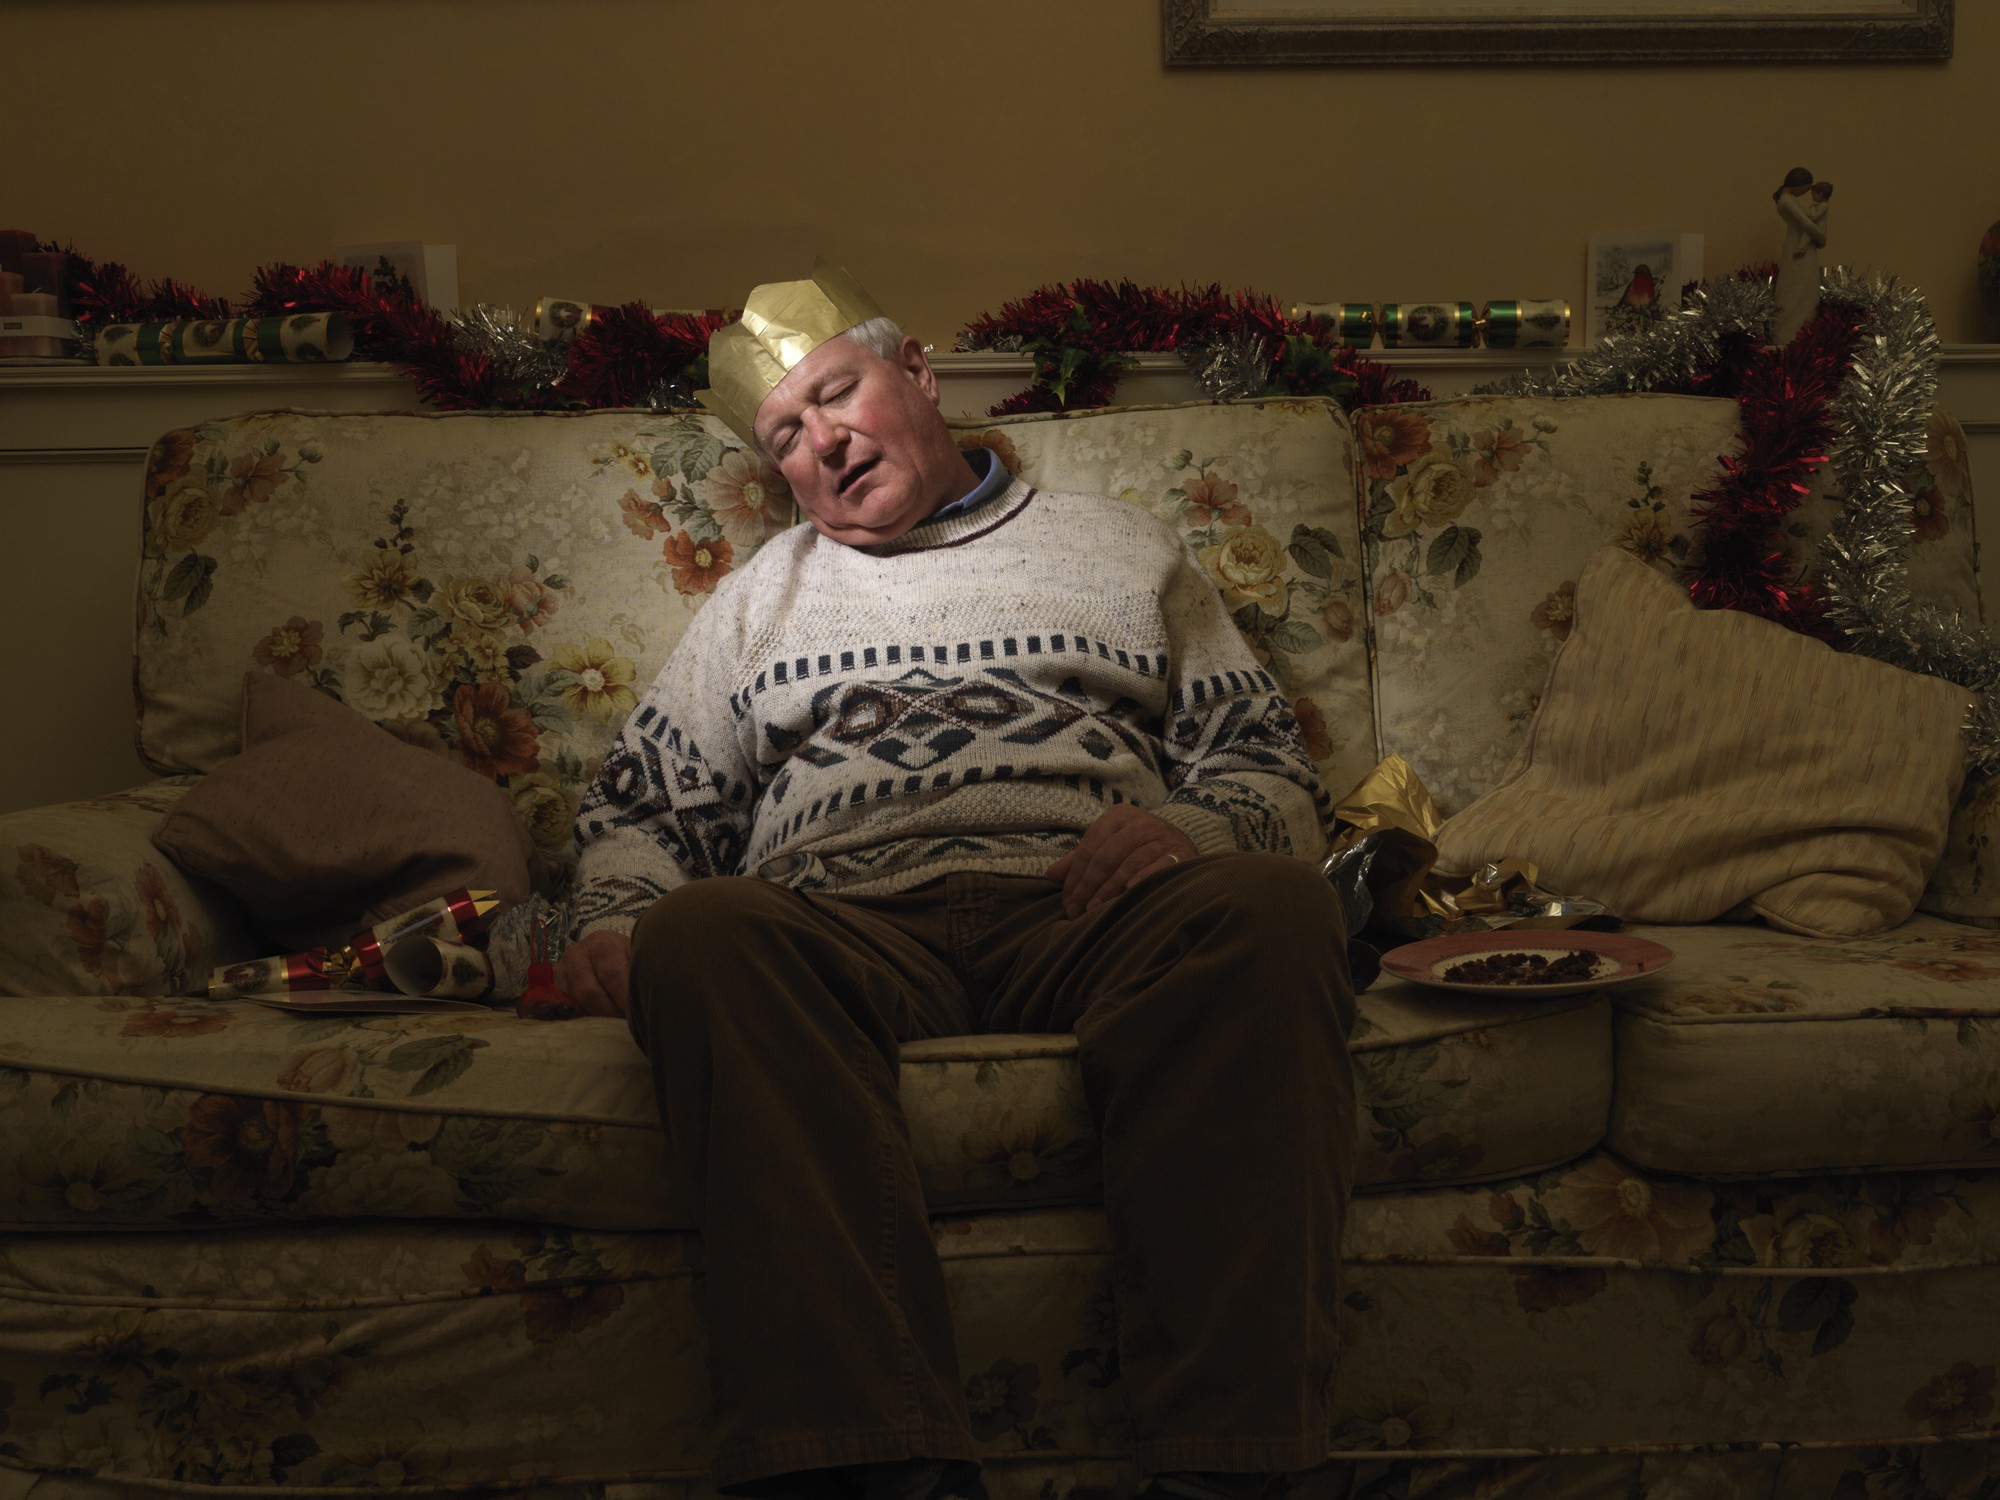 An old man with a gold paper crown hat sleeping on the couch.